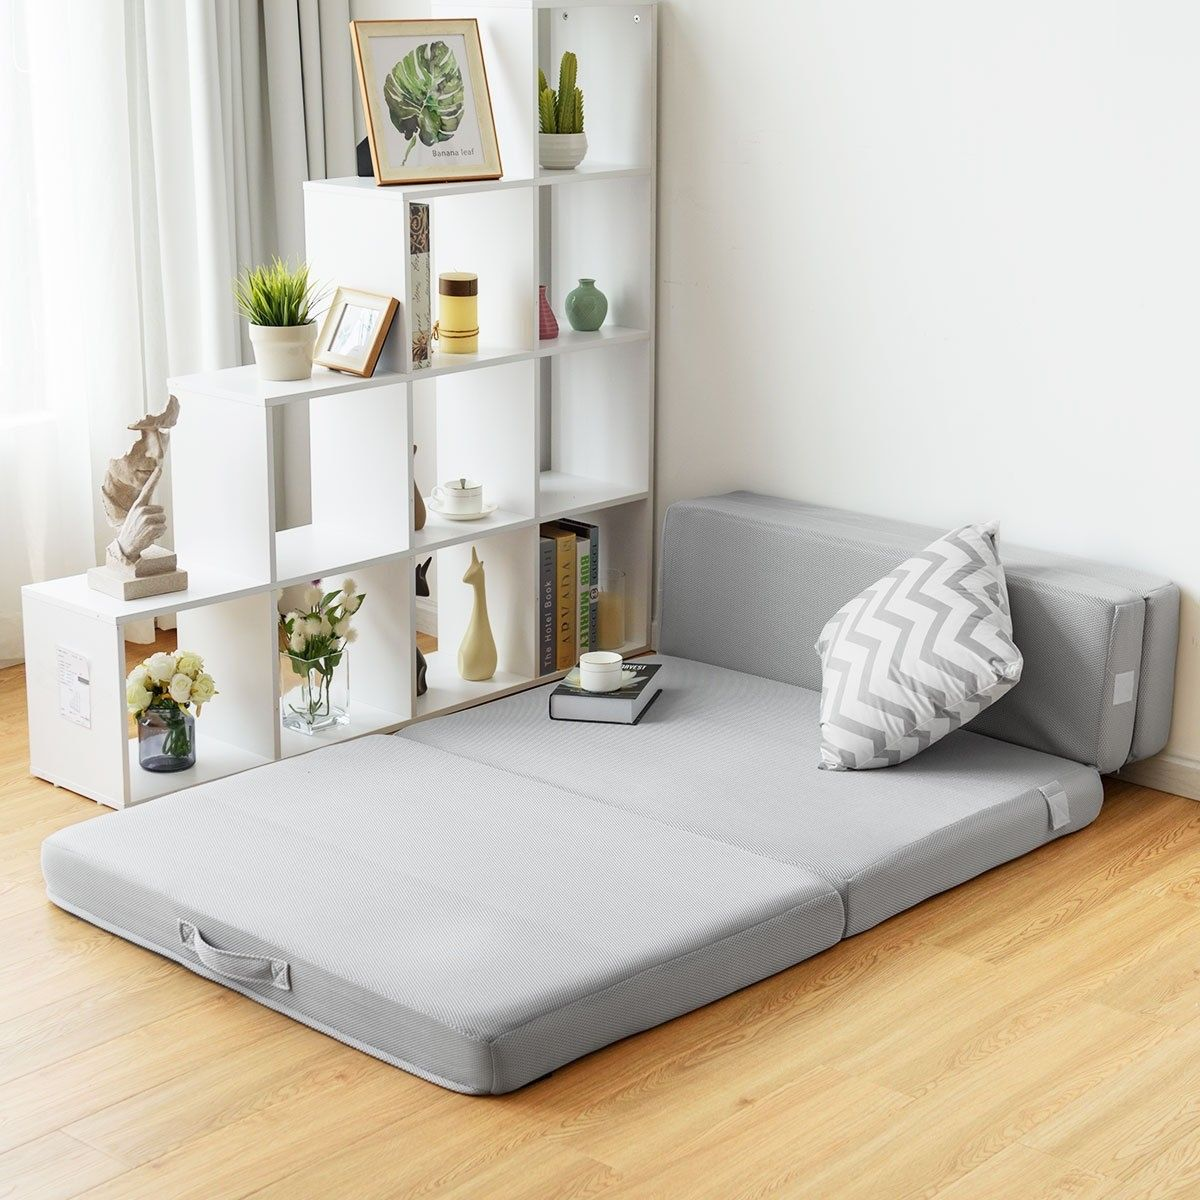 4 Folding Sofa Bed Foam Mattress With Handles Mattress Sofa Sofa Bed For Small Spaces Folding Sofa Bed